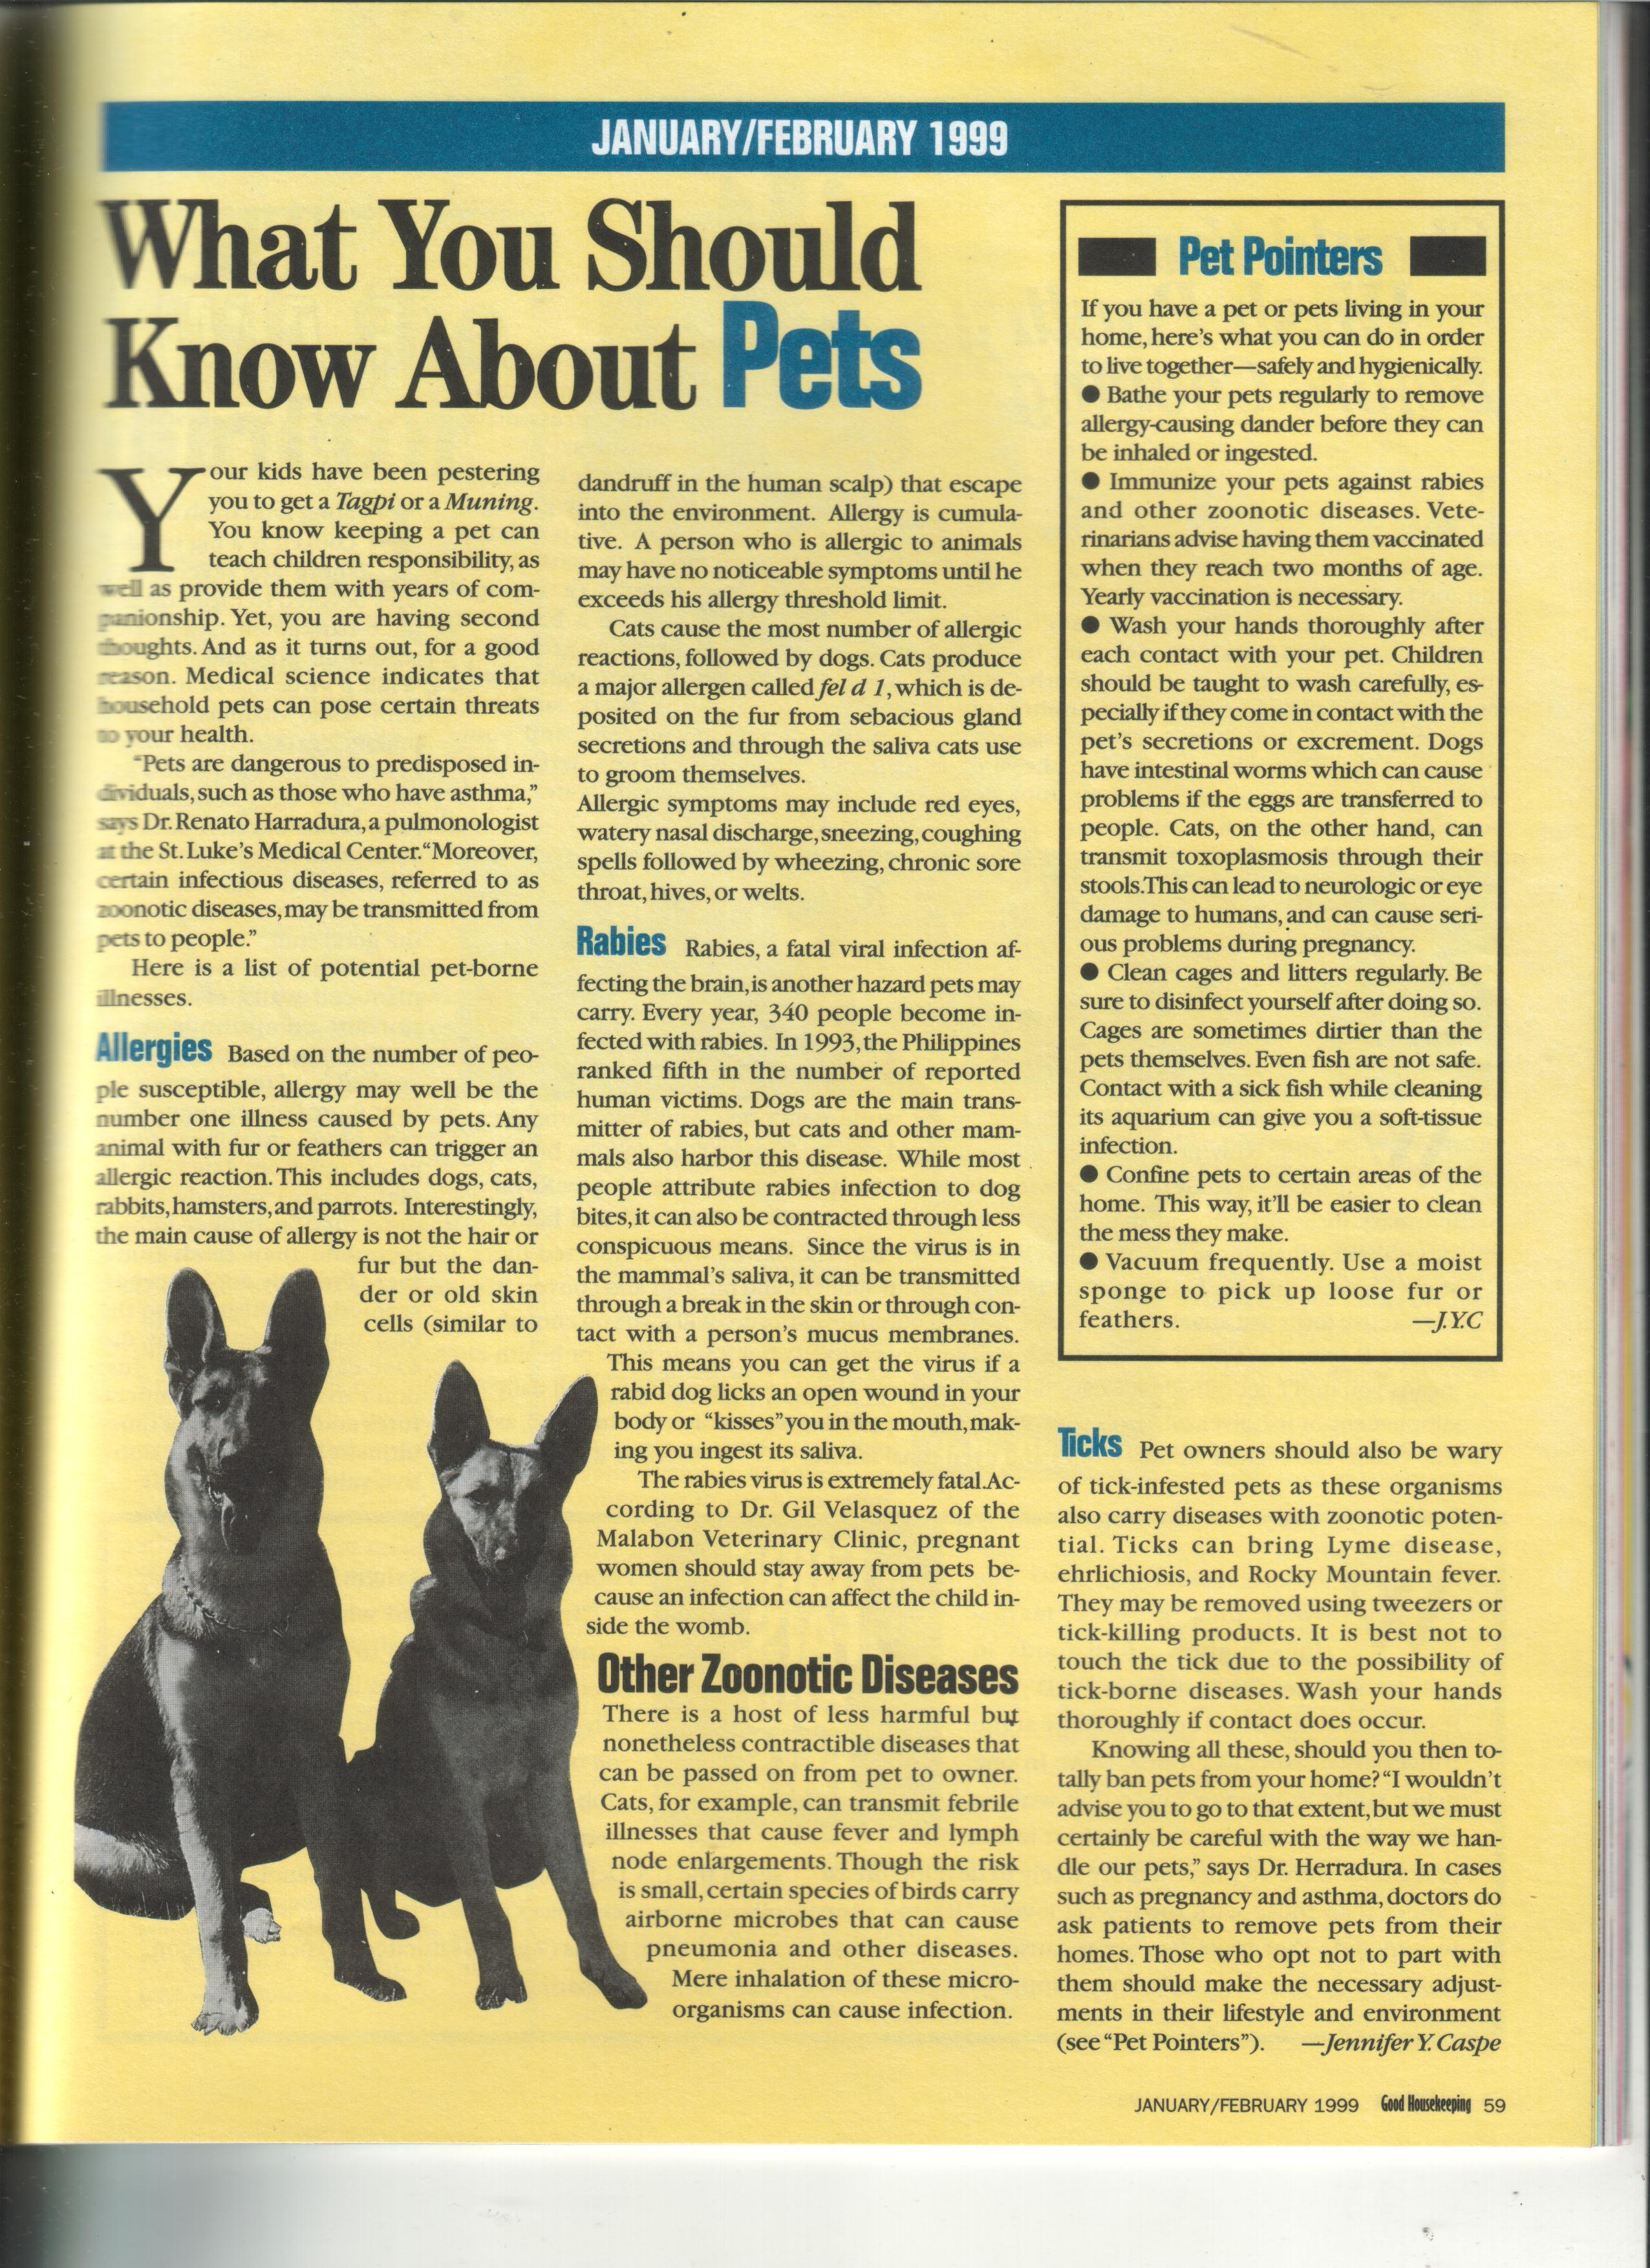 01-99 My FIRST GH ARTICLE